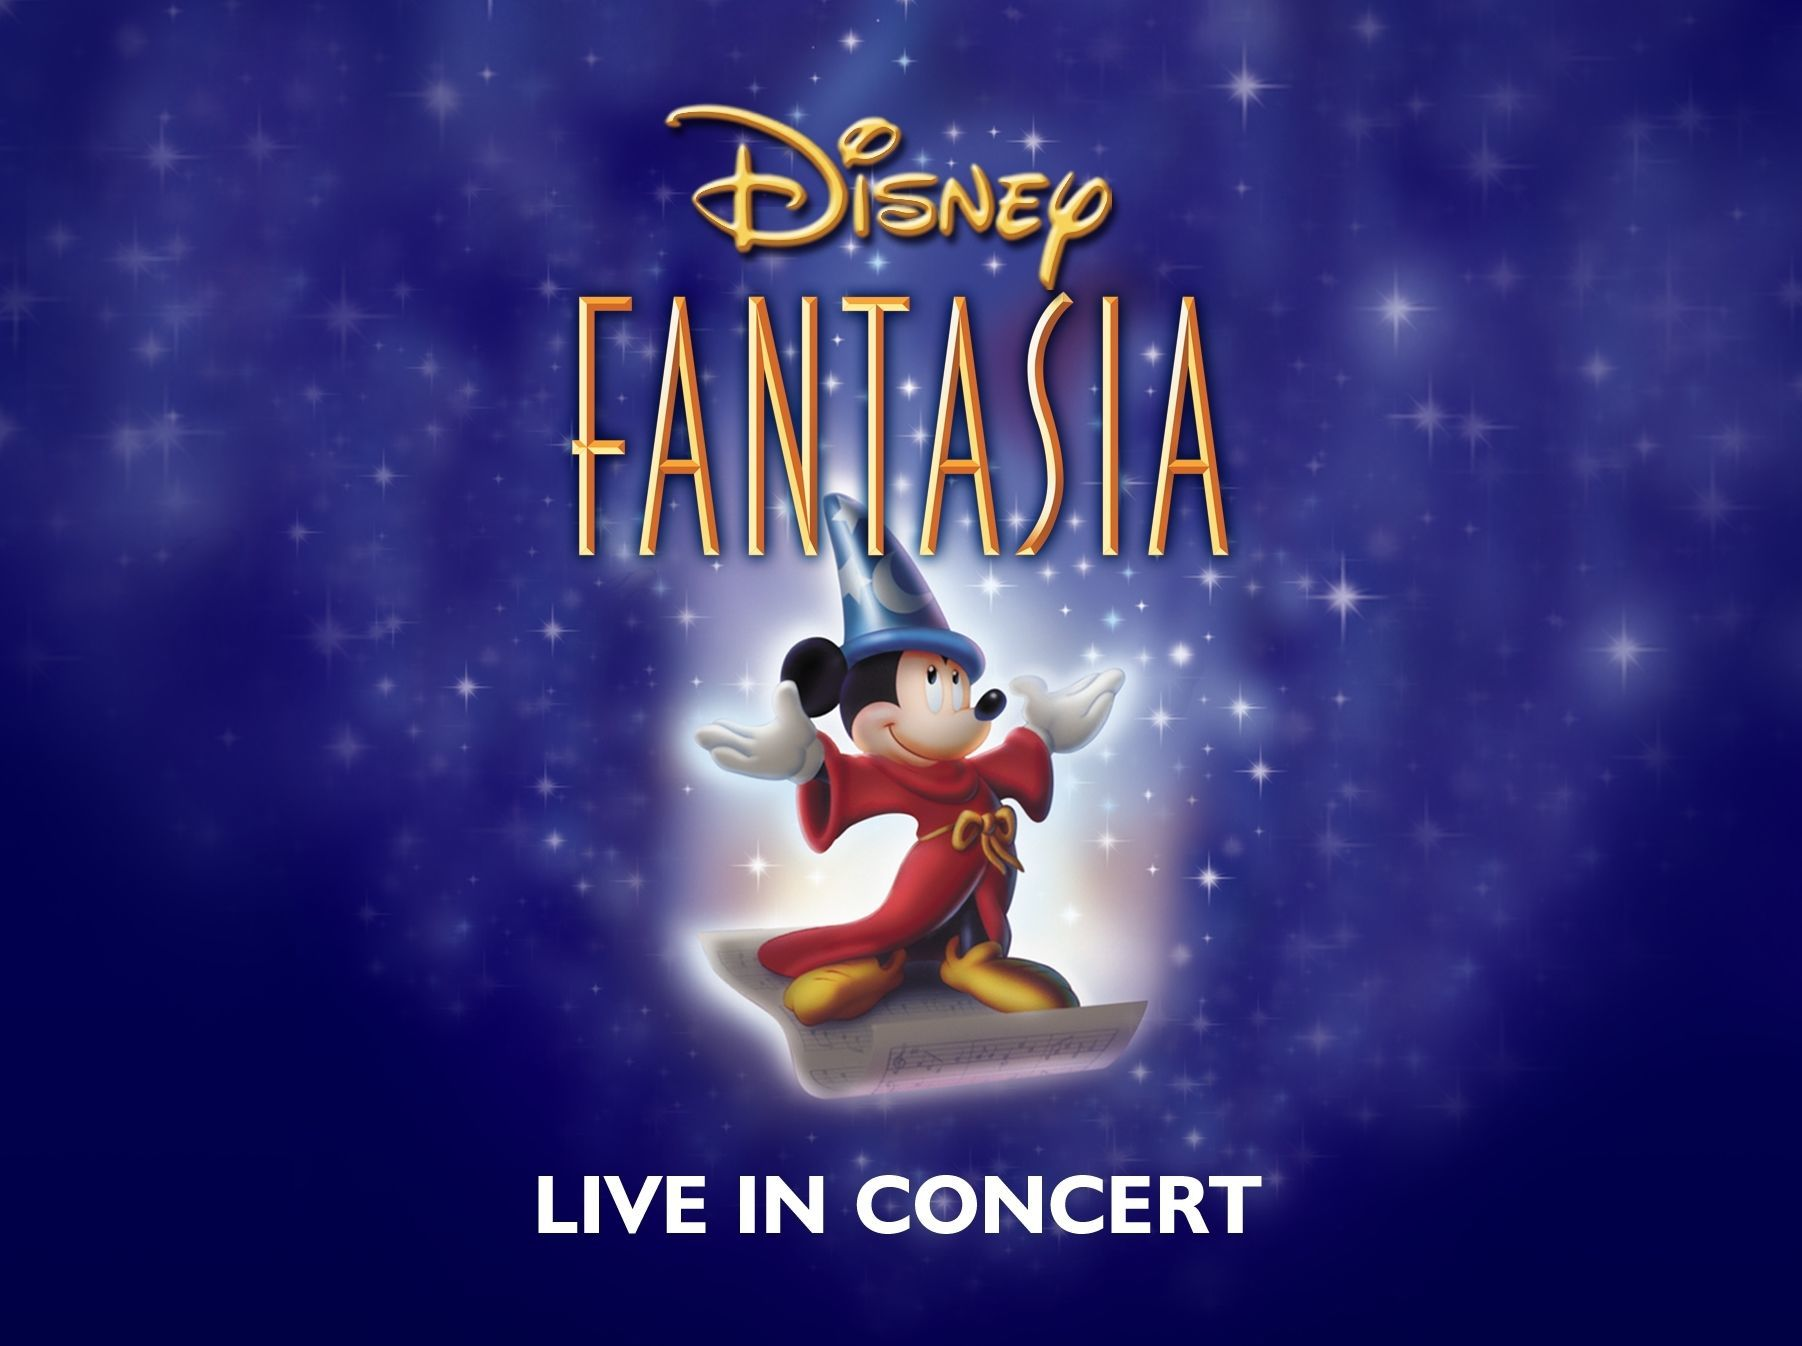 Disney in Concert - Fantasia